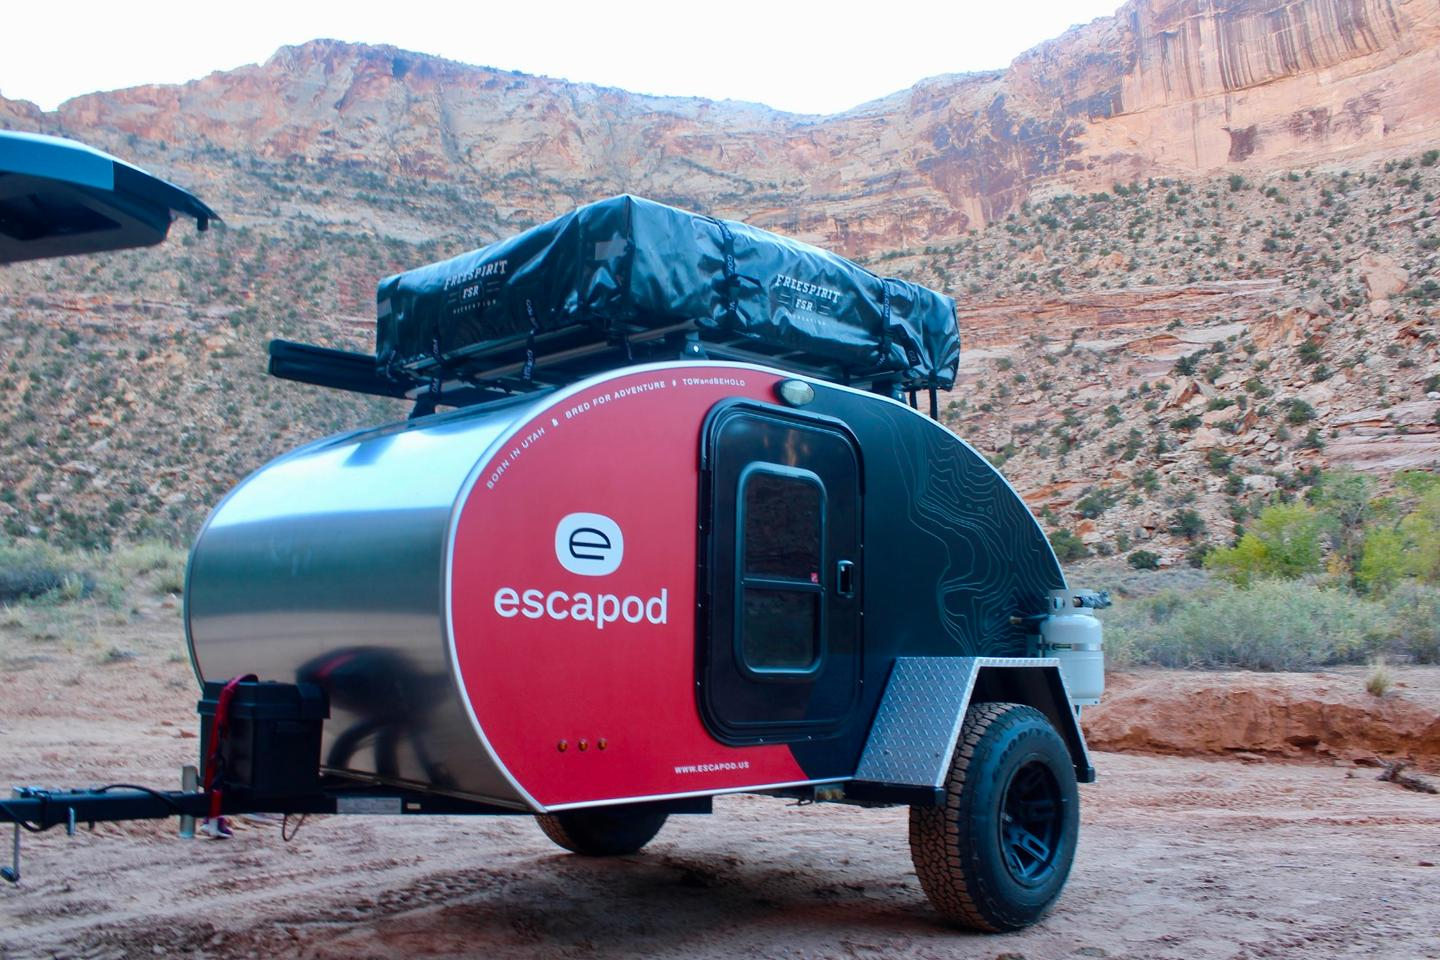 We arrive at camp with the Escapod Topo ...